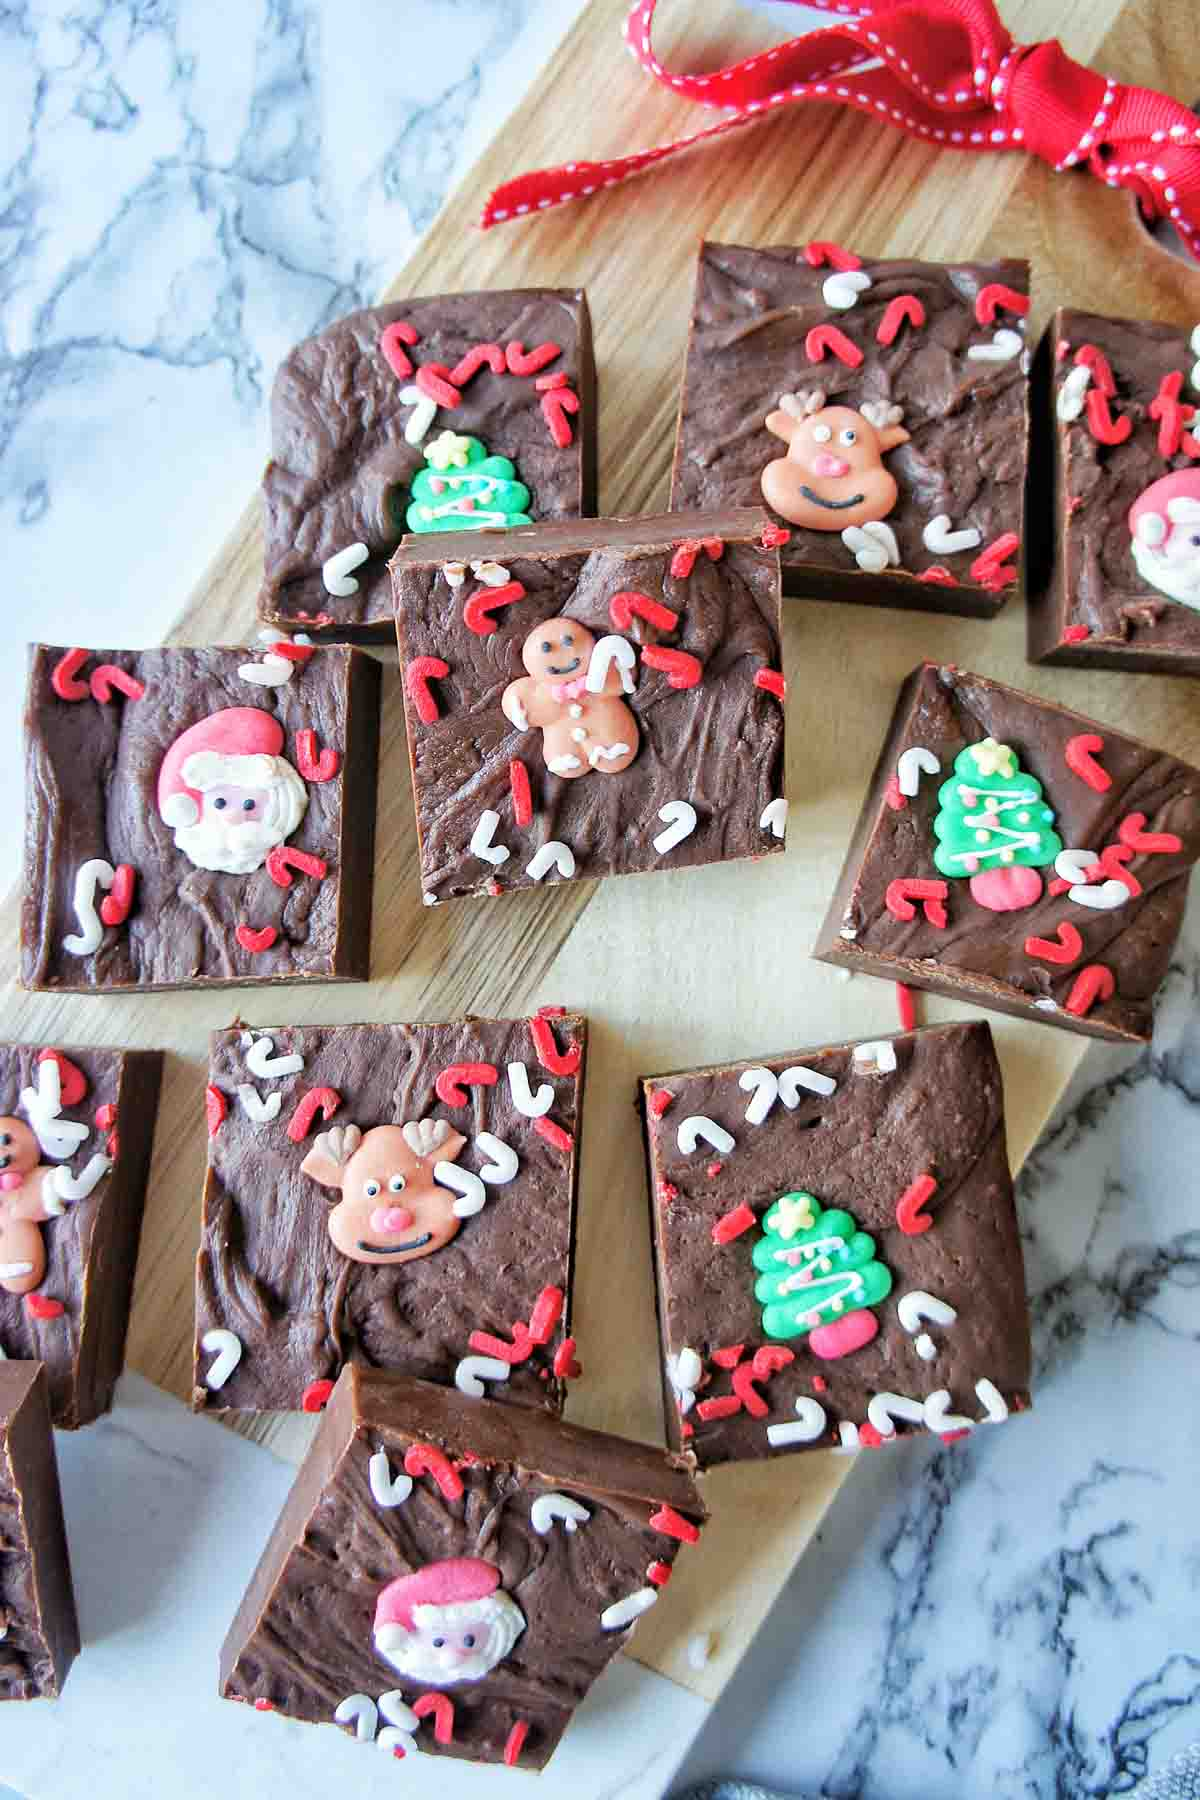 Pieces of fudge with Christmas sprinkles on a chopping board